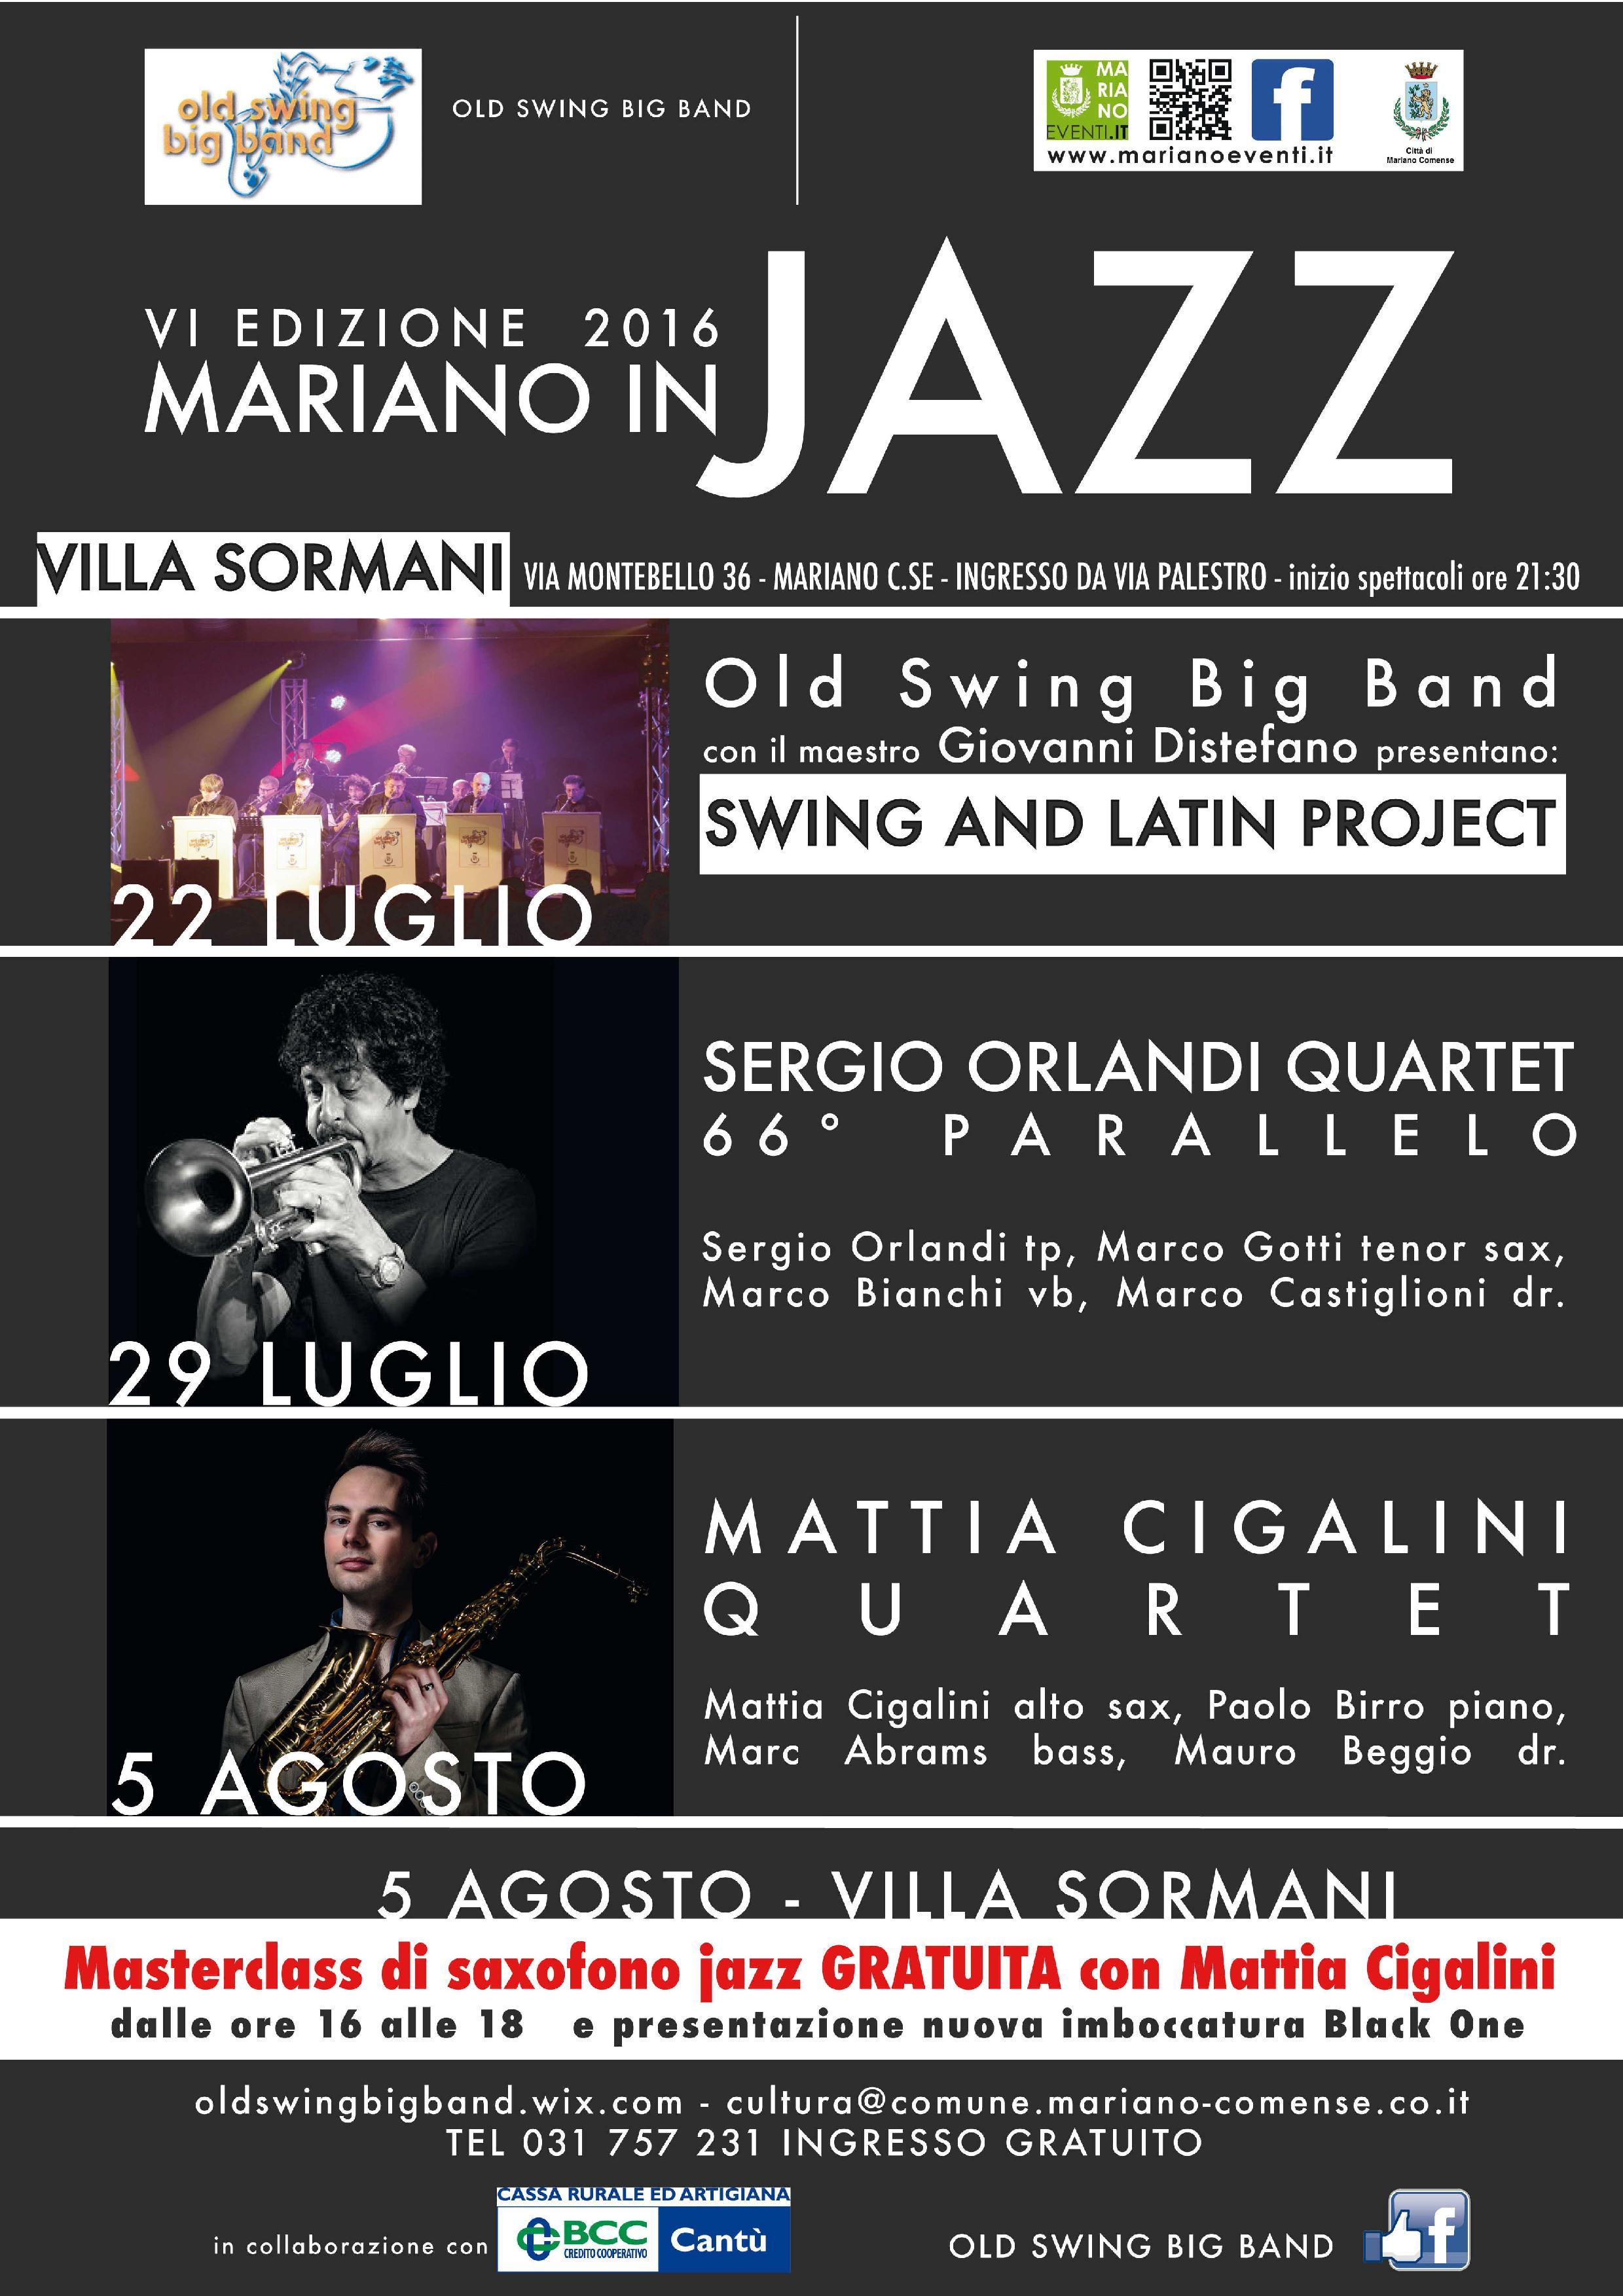 MARIANO IN JAZZ